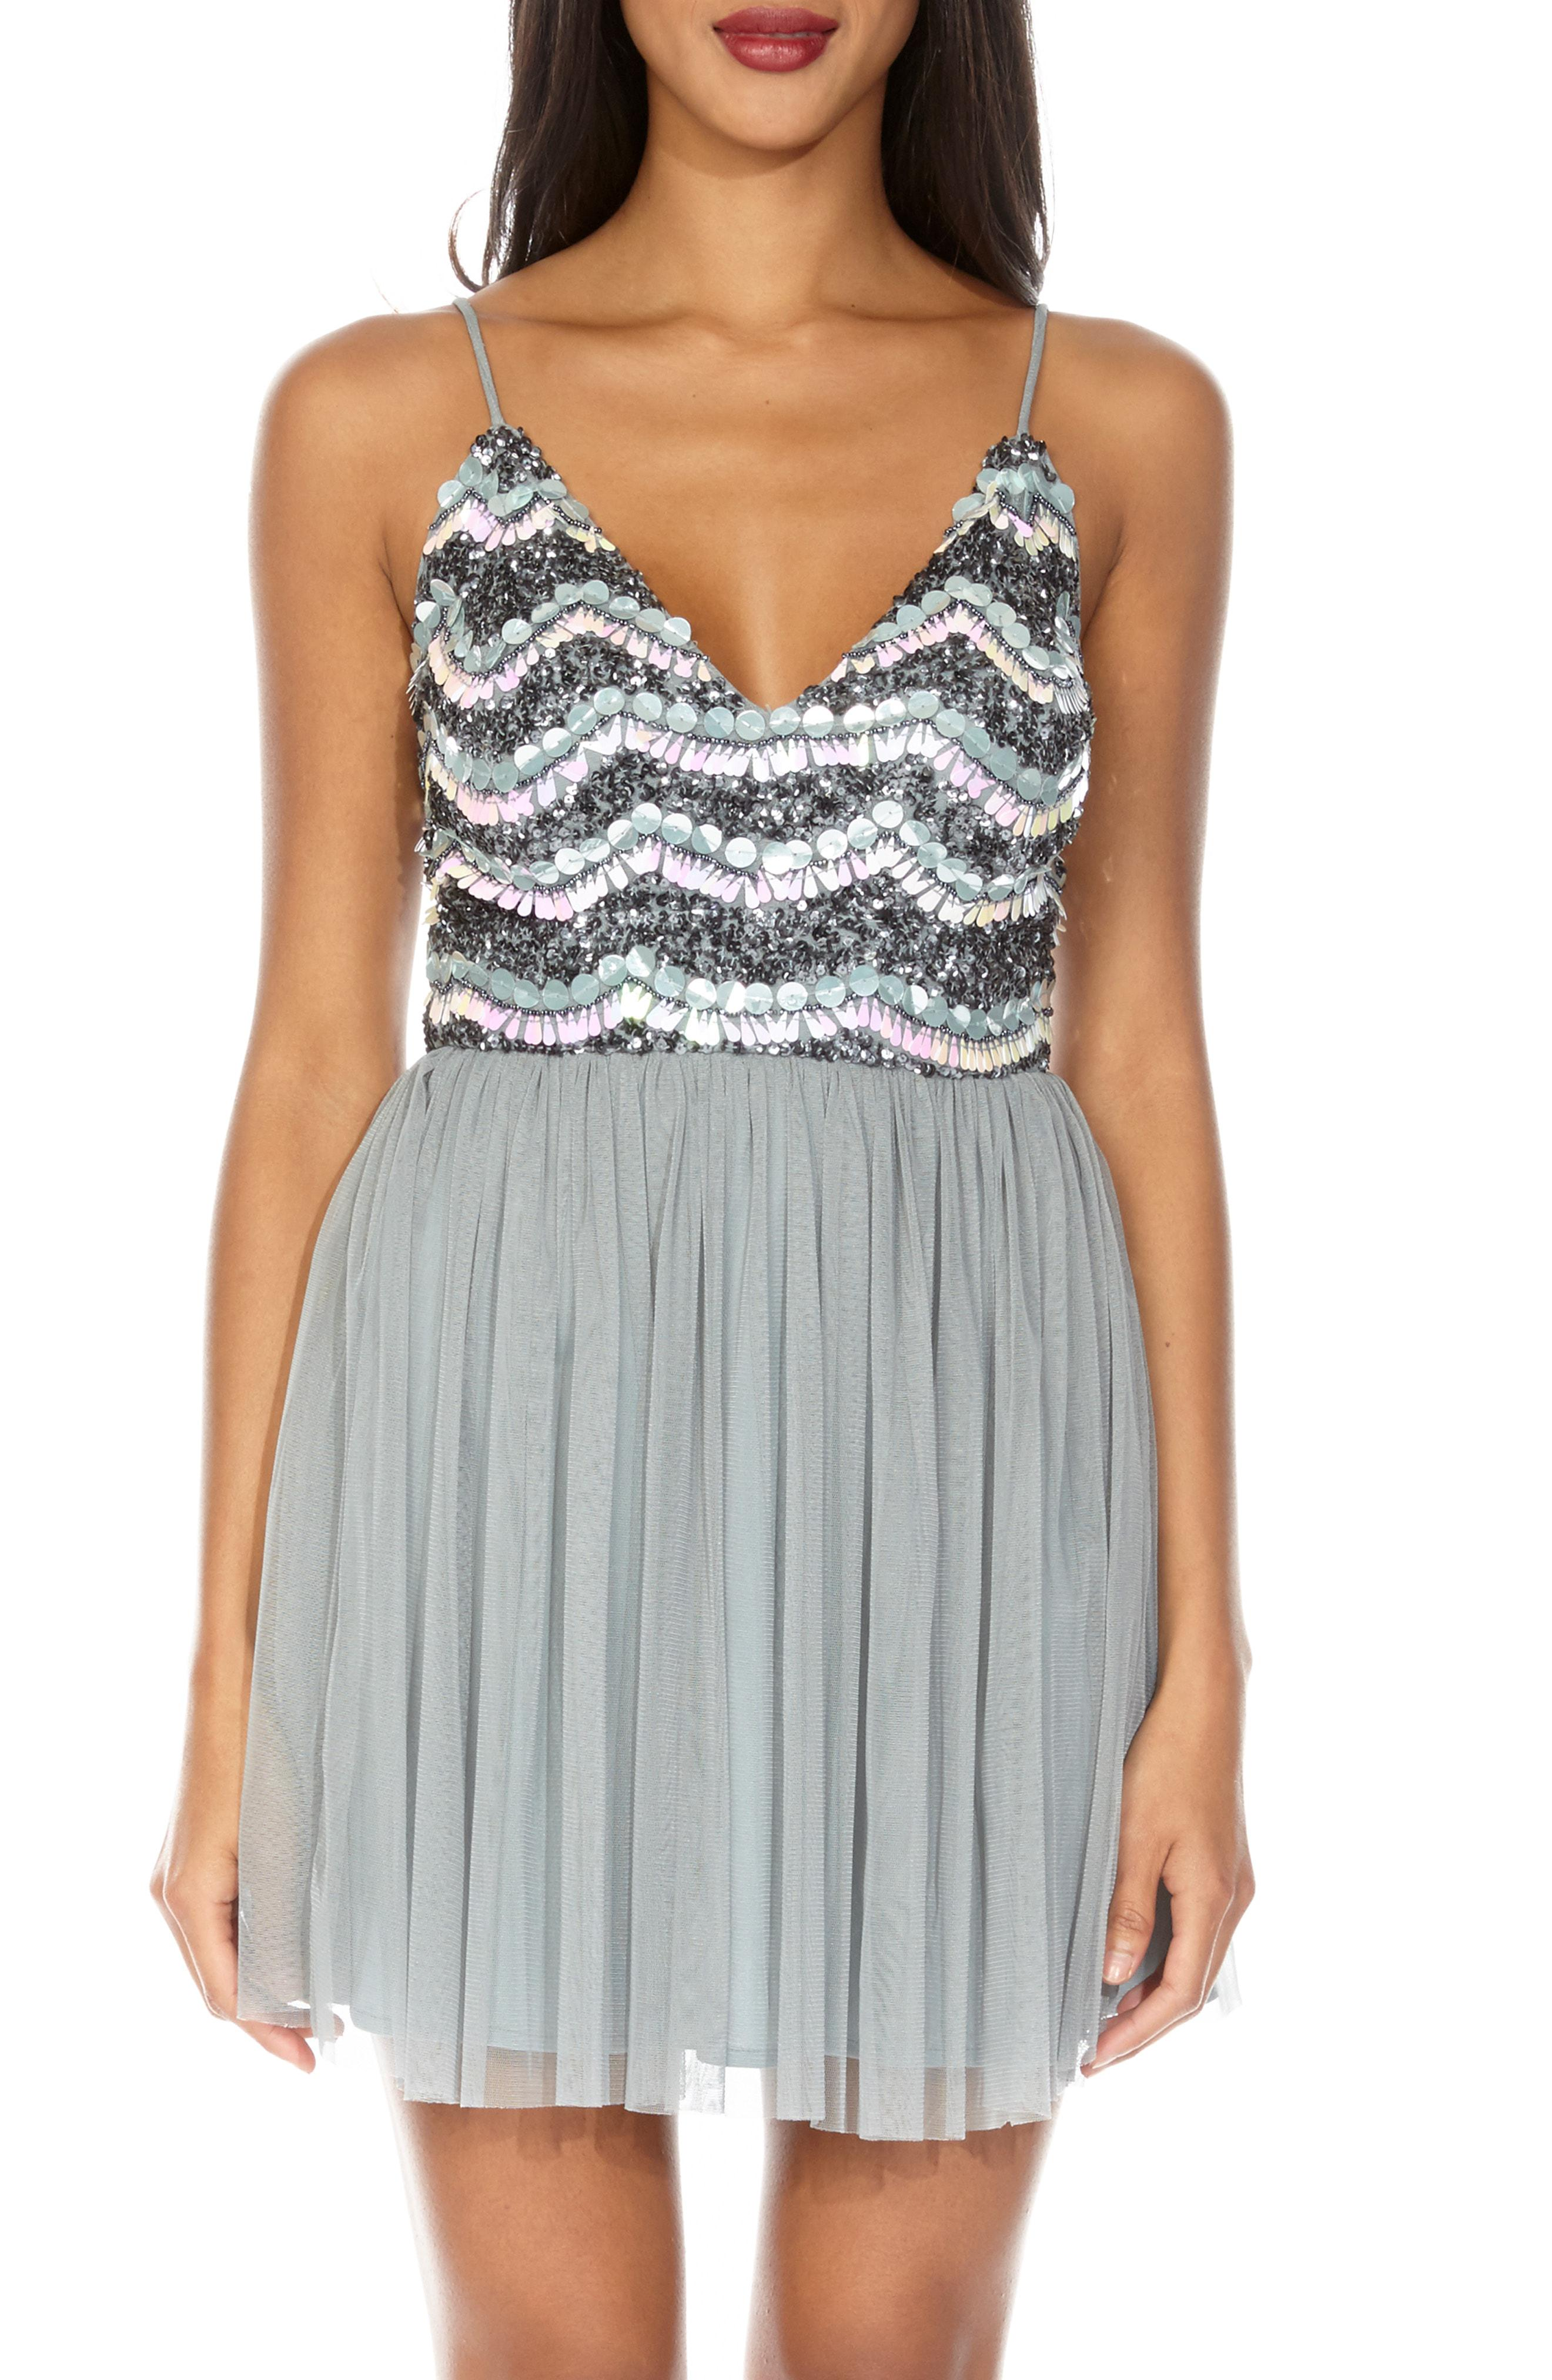 Amika Beads Dress In Laceamp; Mesh Lyst Sequin Party Gray QdshrCxt